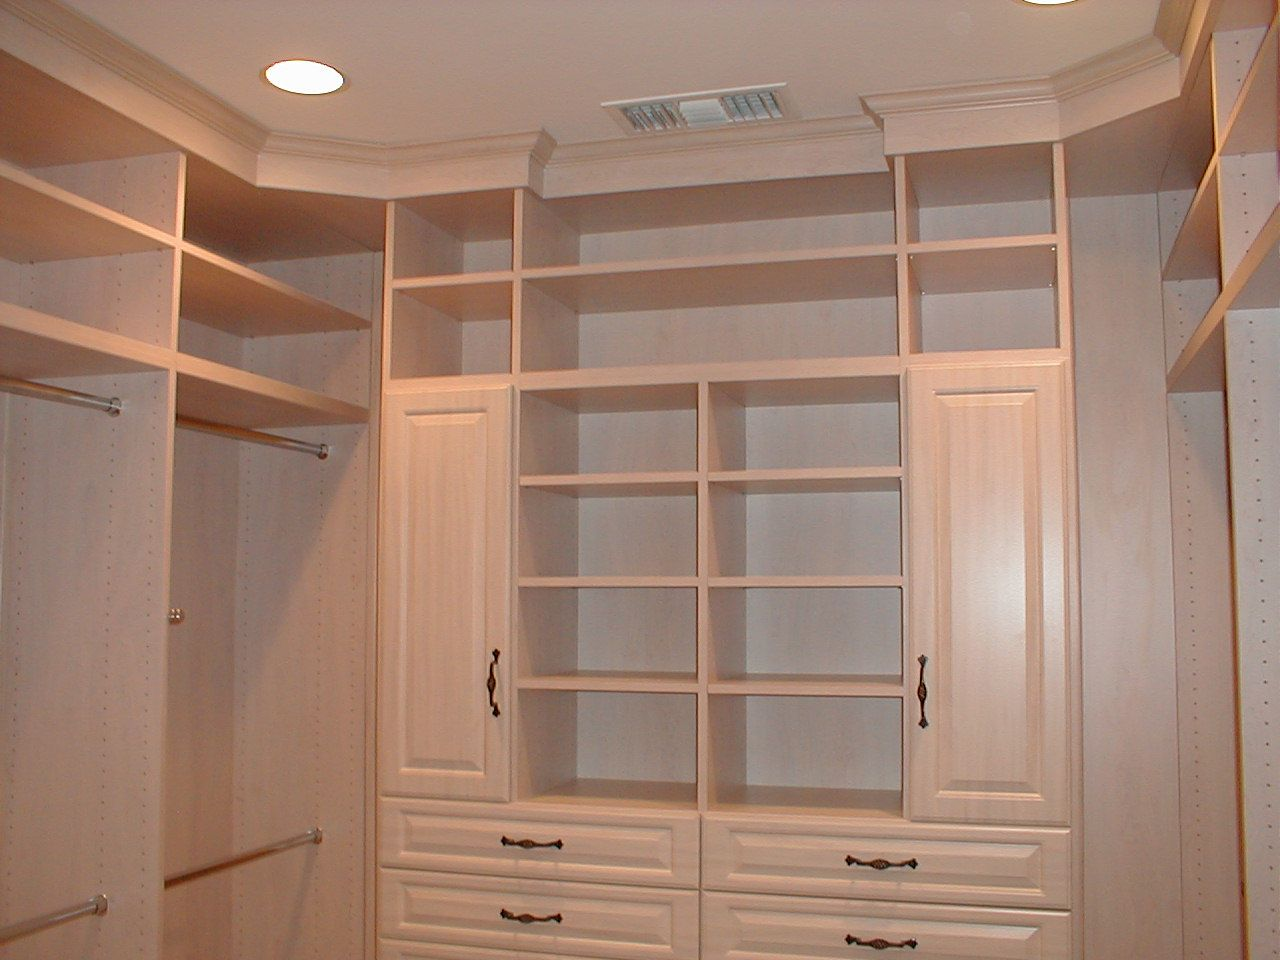 custom closet design - Bedroom Closet Ideas